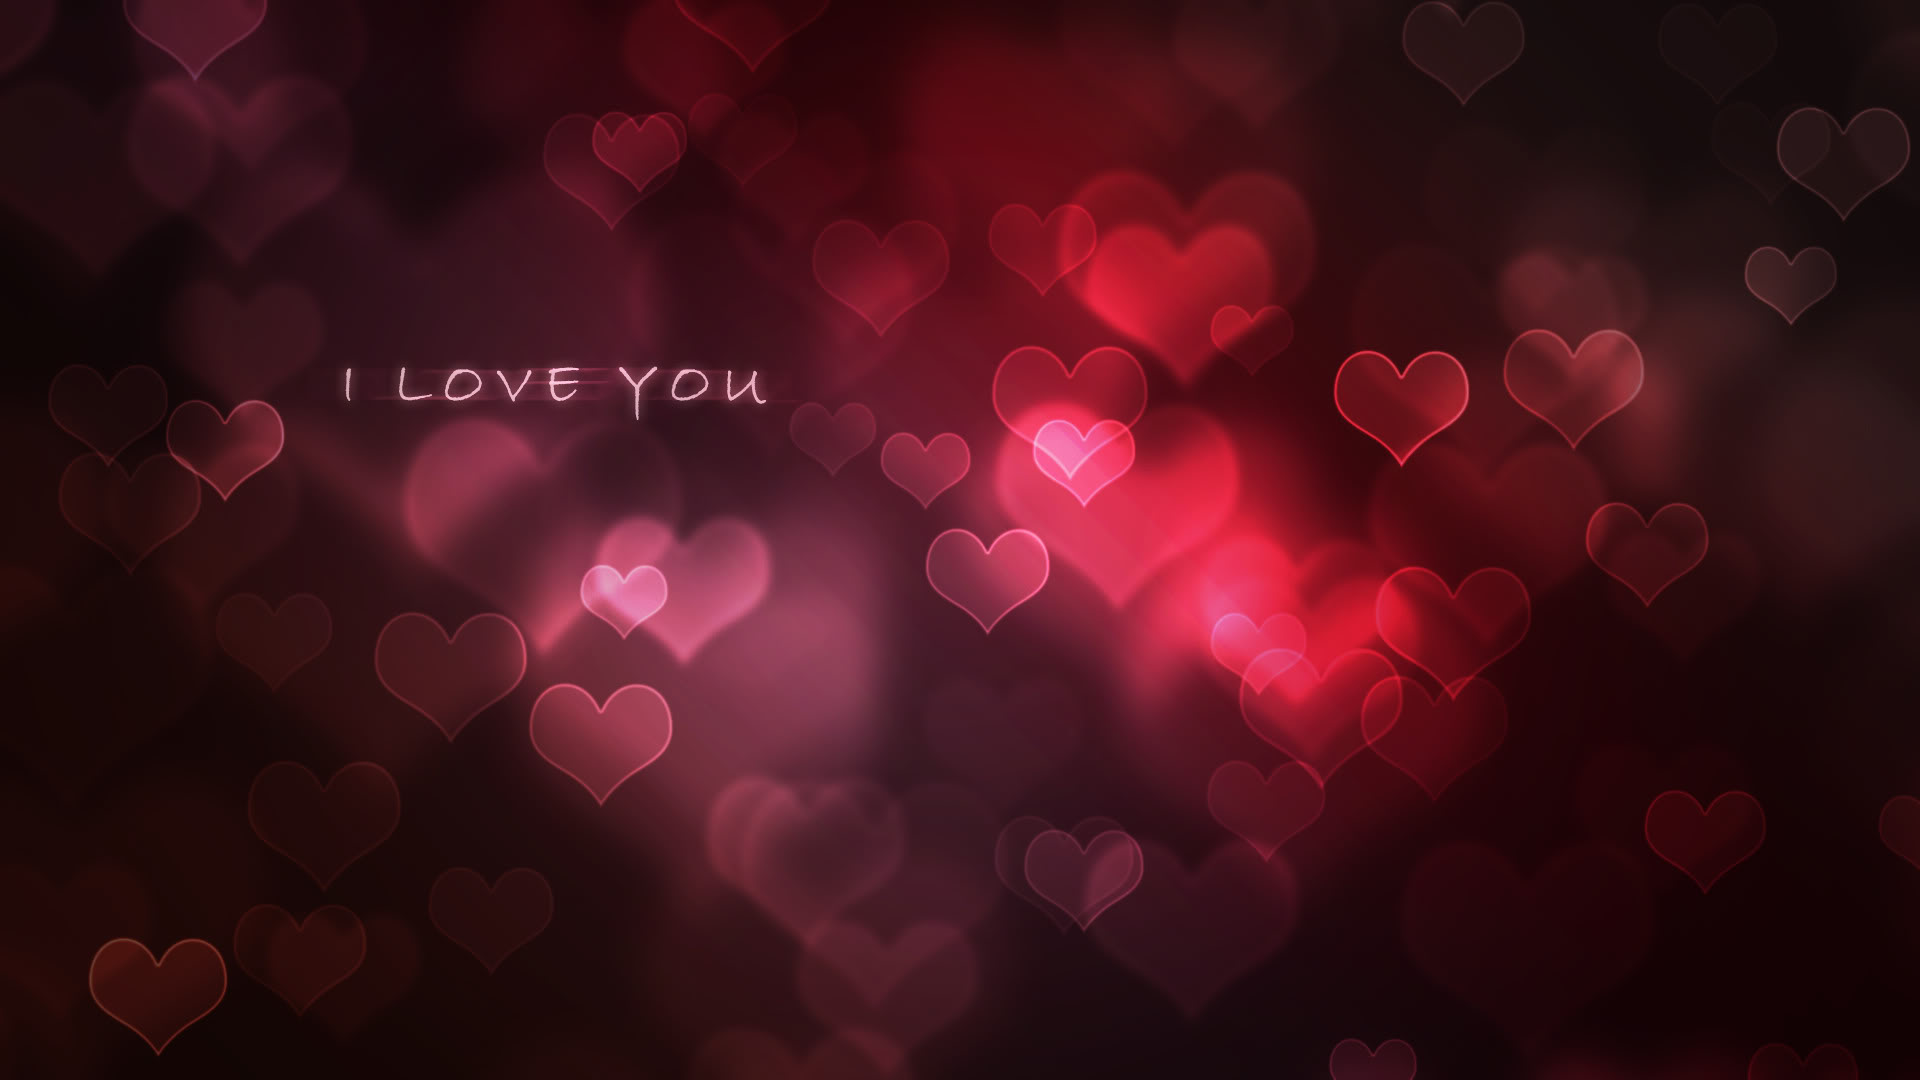 Free Download I Love You Background Hd Wallpaper Of Love